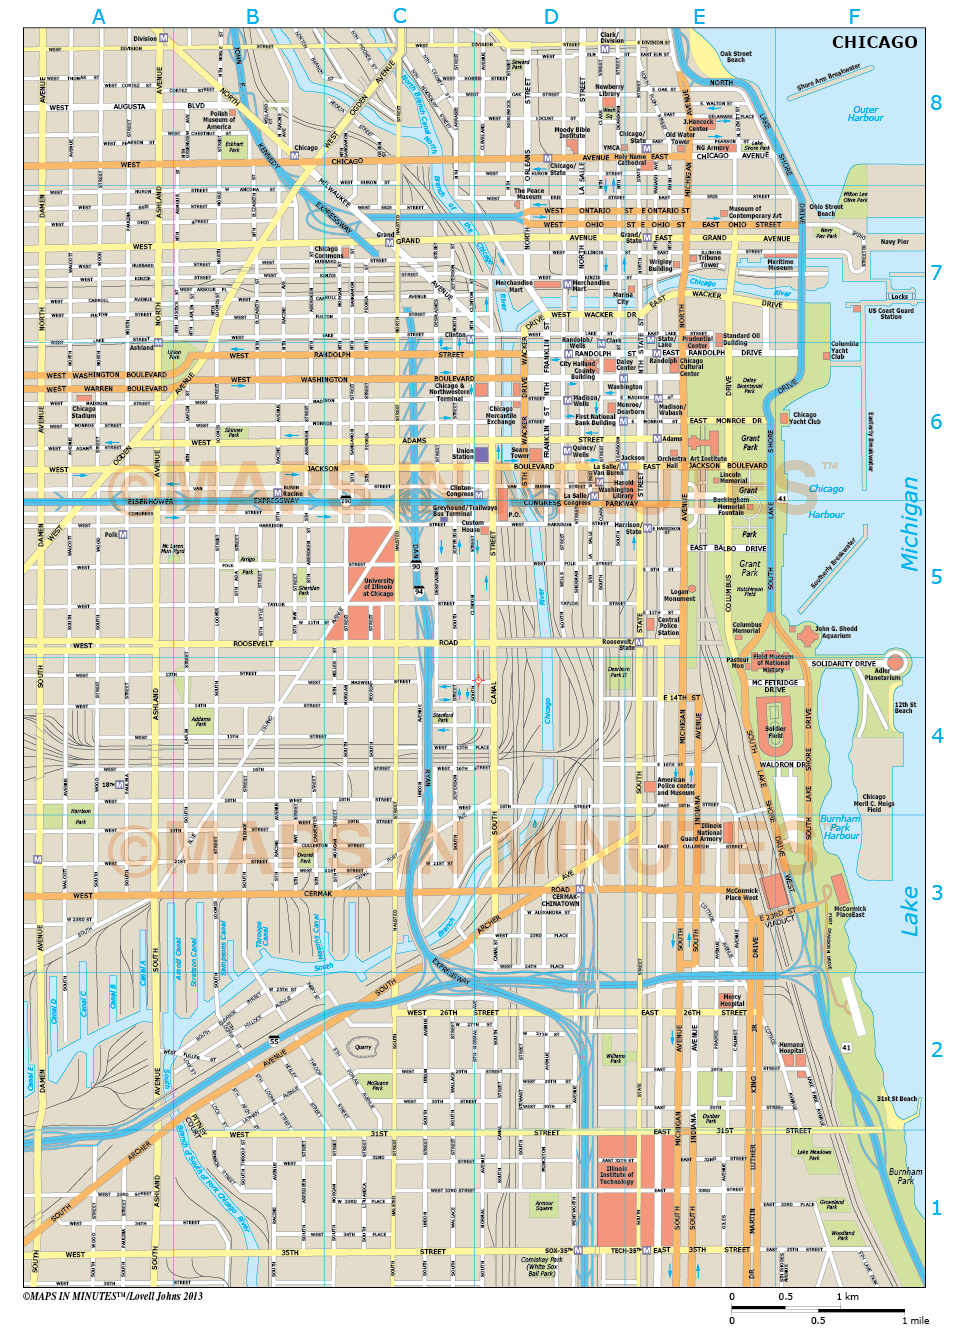 mimchicagocsmainpng - chicago city map in illustrator cs or pdf format